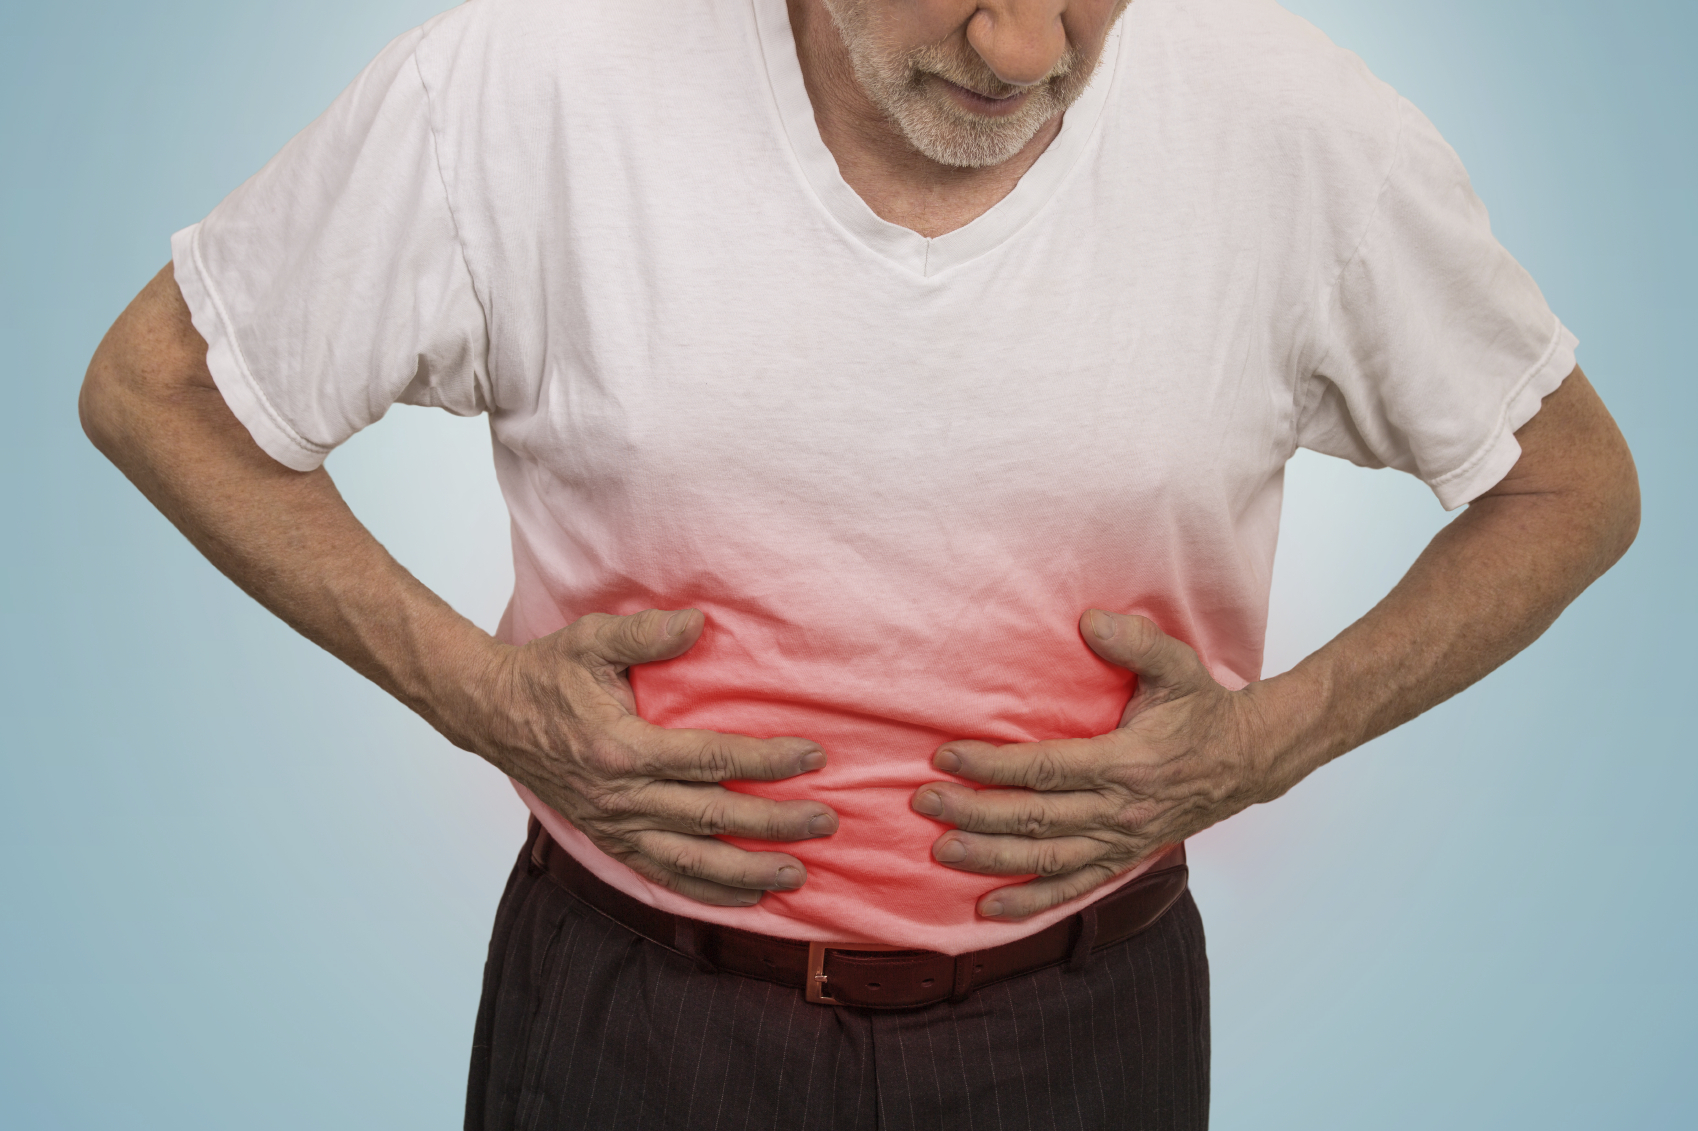 Vitamin D deficiency could be the cause of irritable bowel syndrome, according to new research.